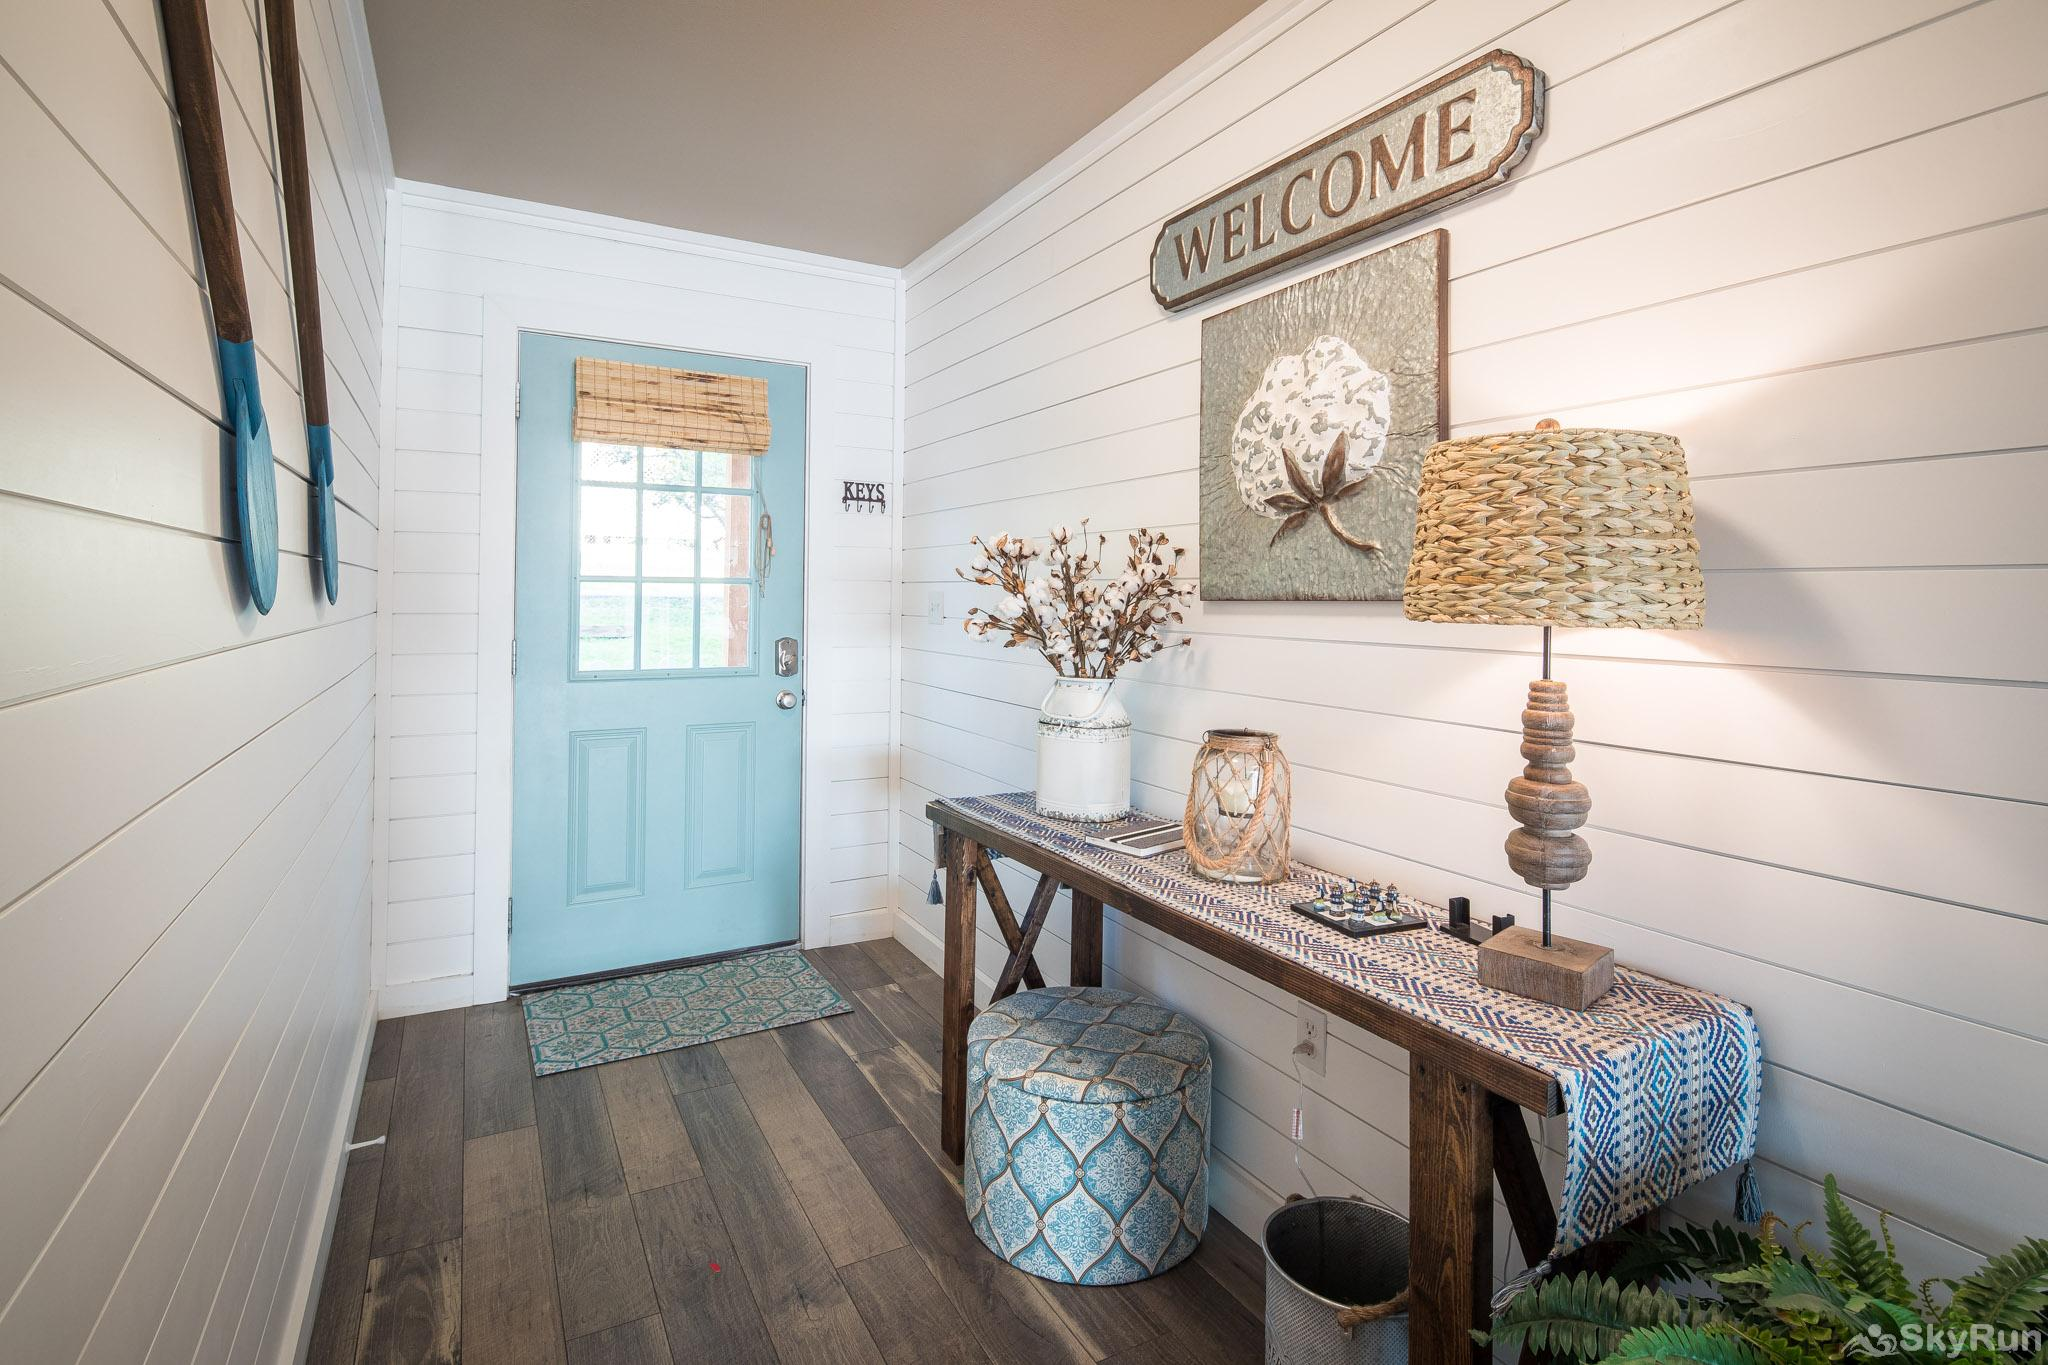 CLIFF HOUSE AT CANYON LAKE Charming entryway with shiplap and unique decor